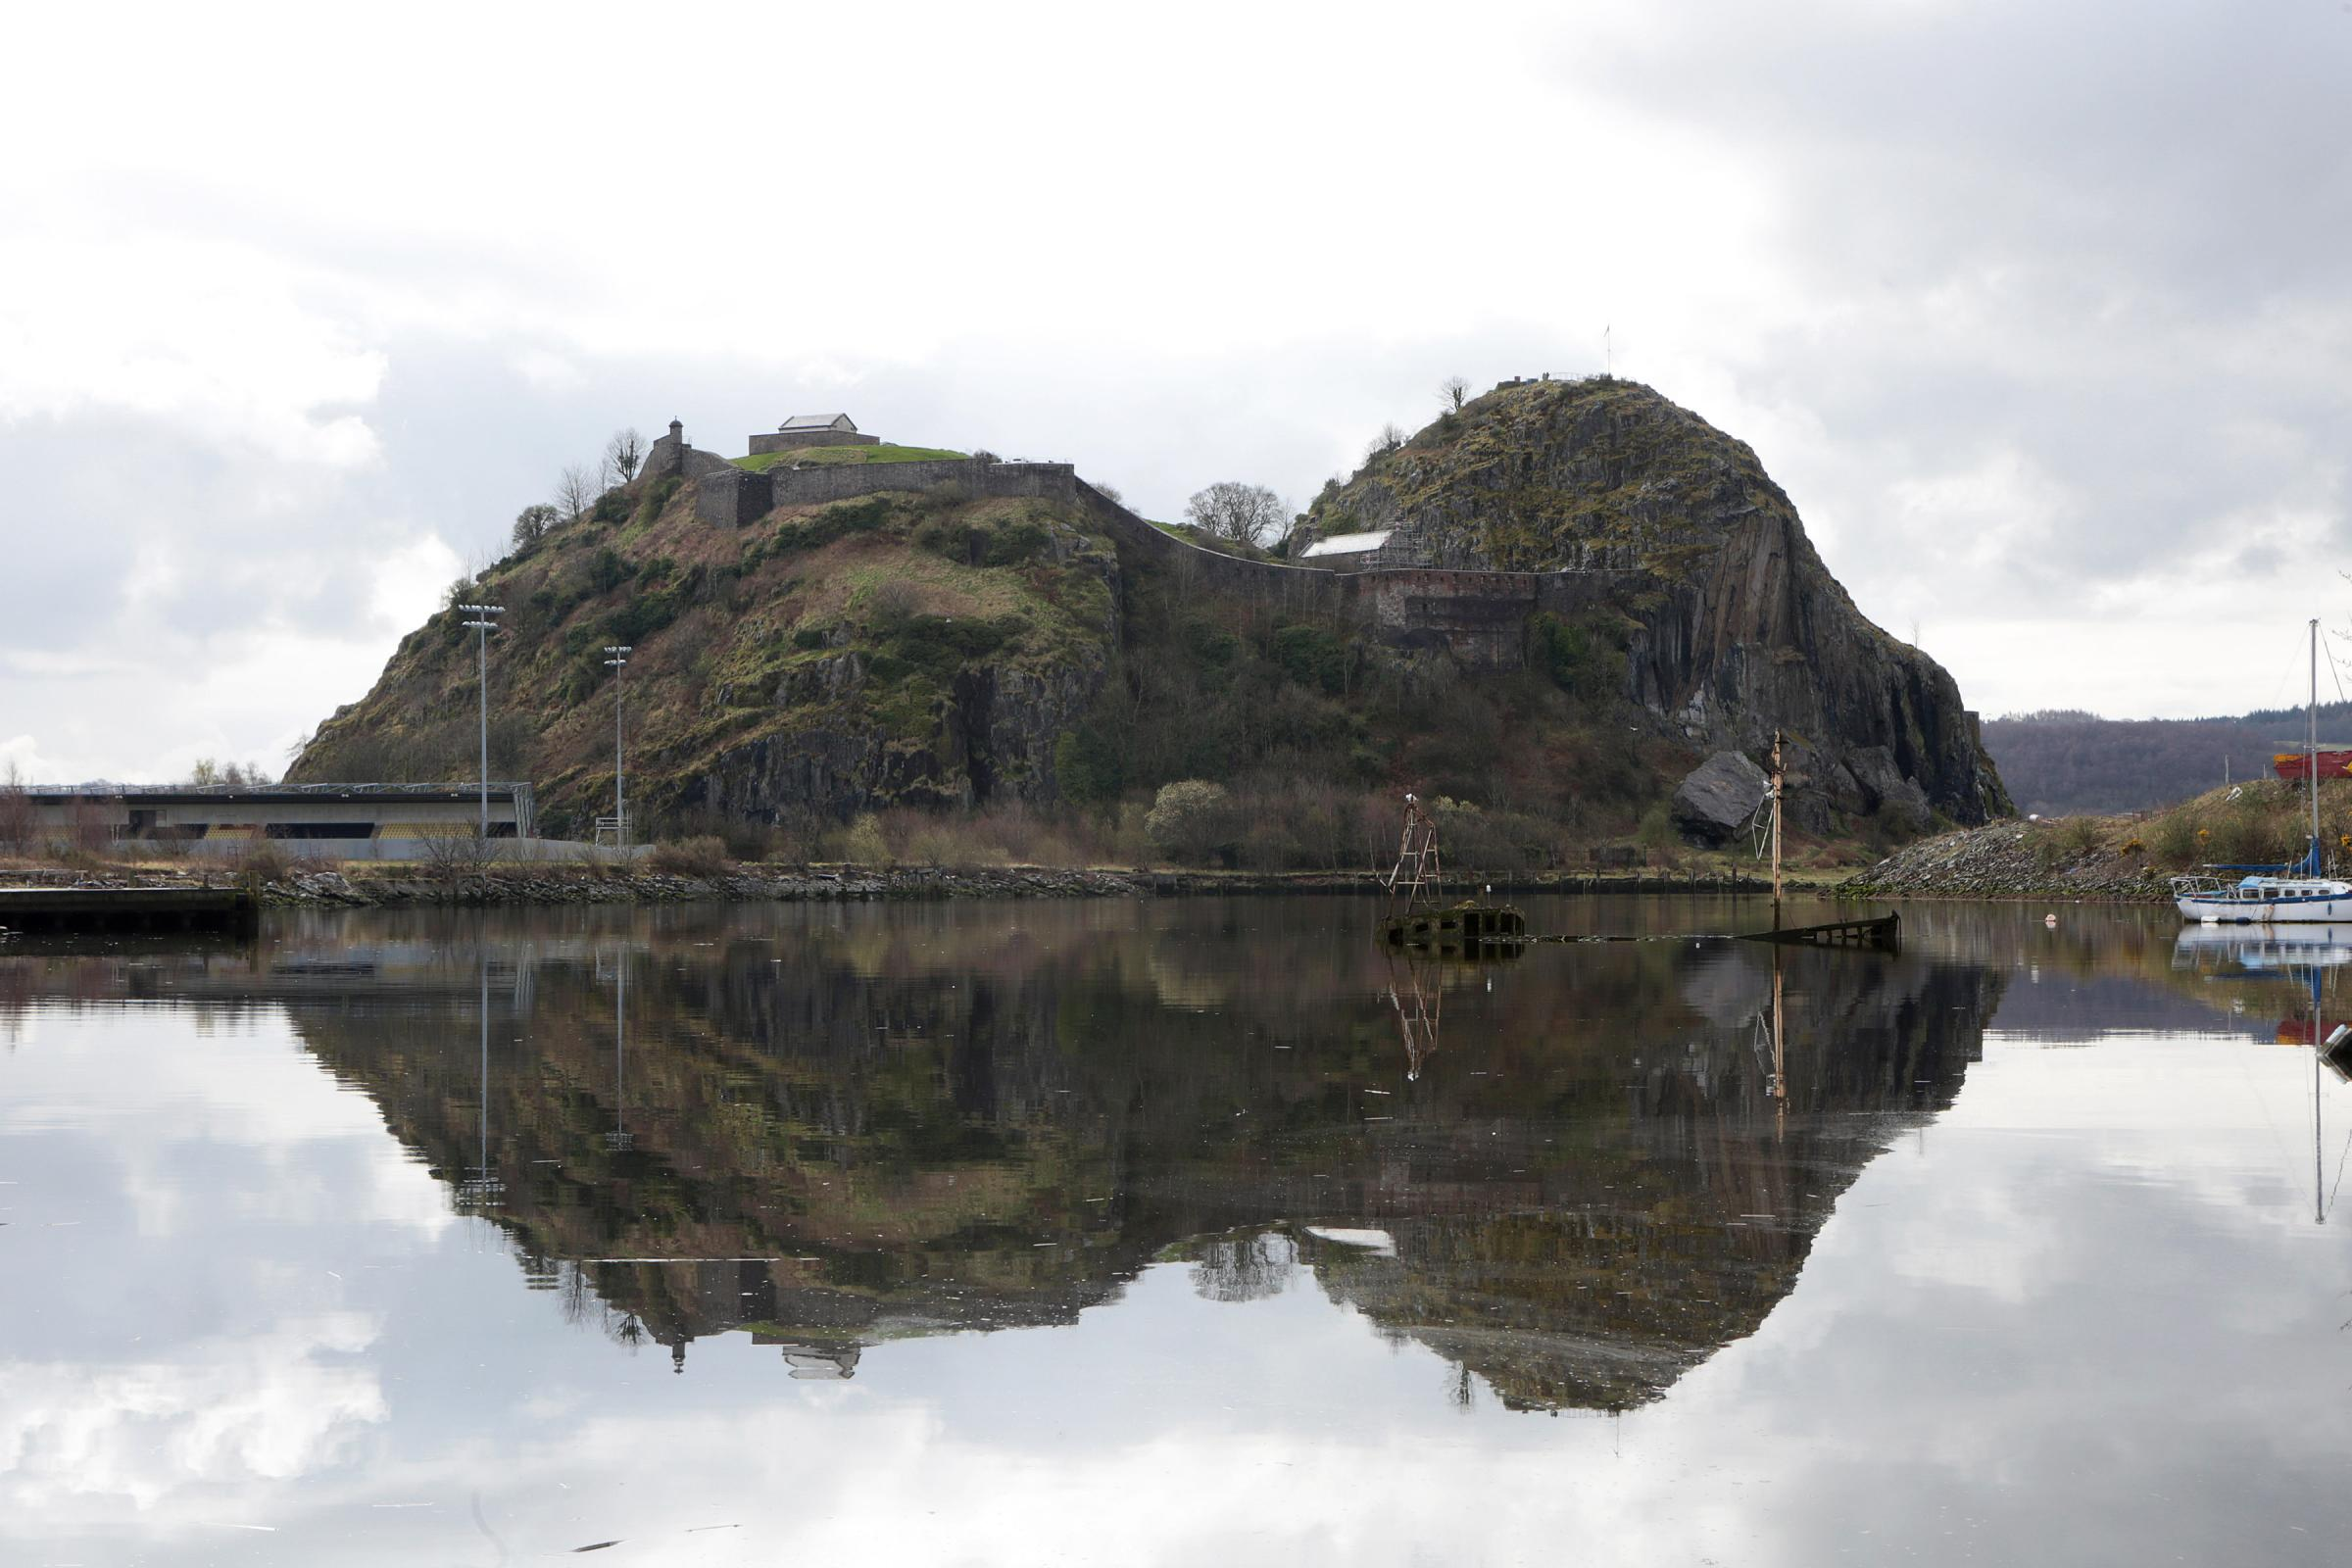 The event involves 13 miles of racing from Dumbarton Castle to the Finnieston Crane